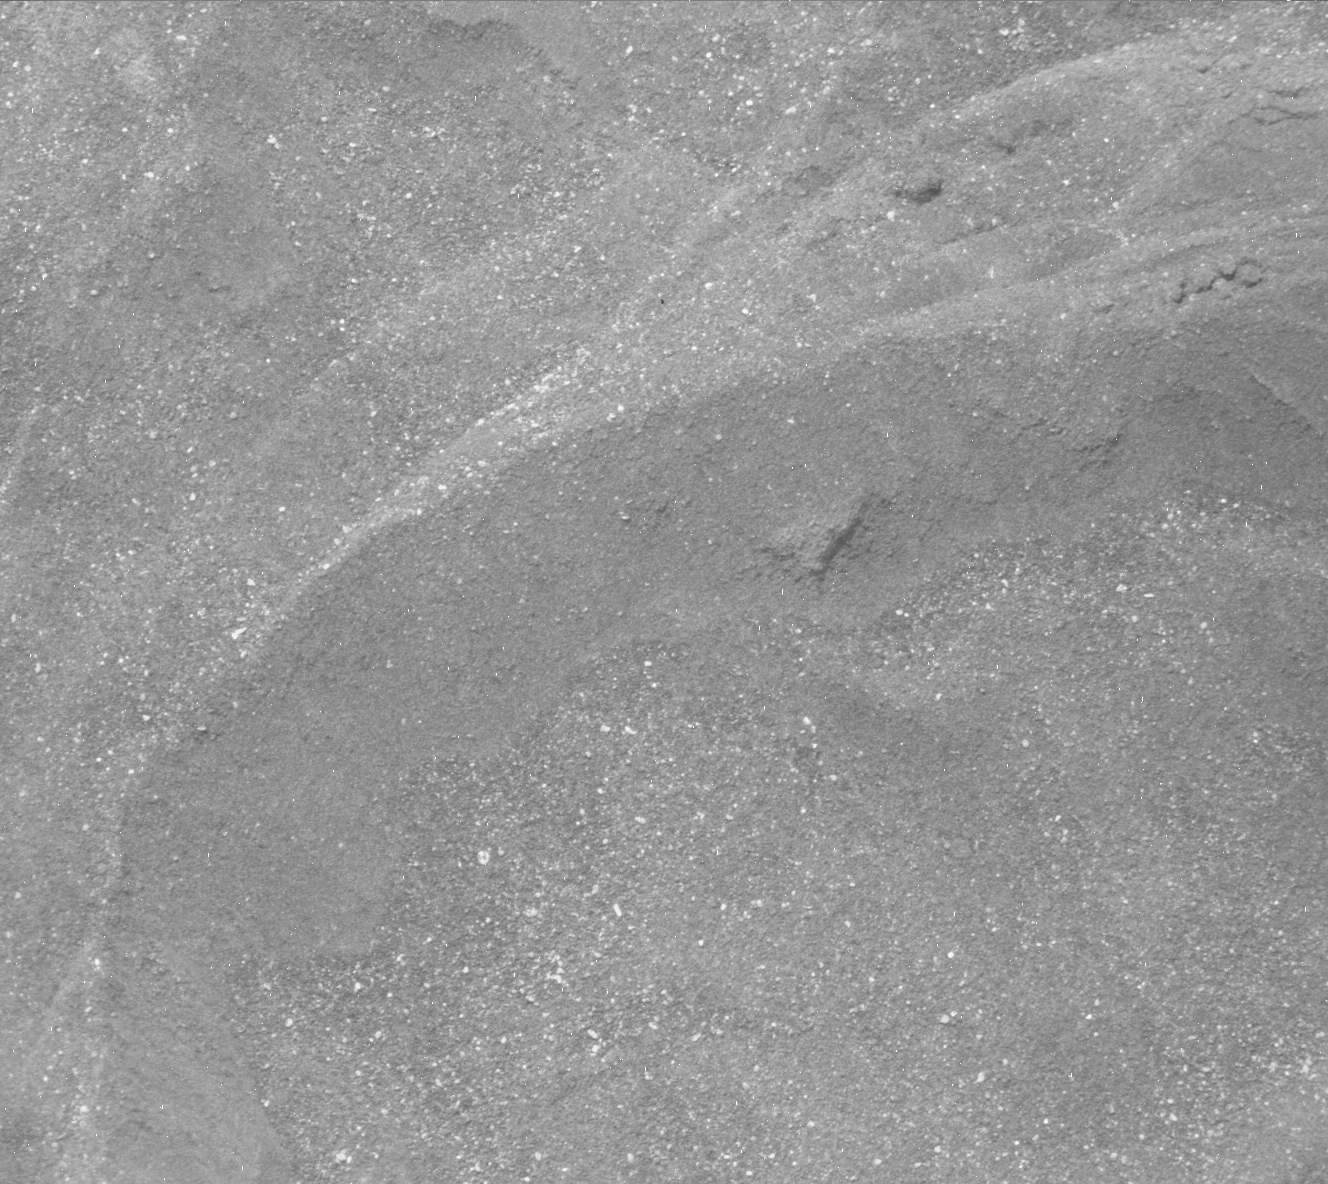 Nasa's Mars rover Curiosity acquired this image using its Mast Camera (Mastcam) on Sol 1687